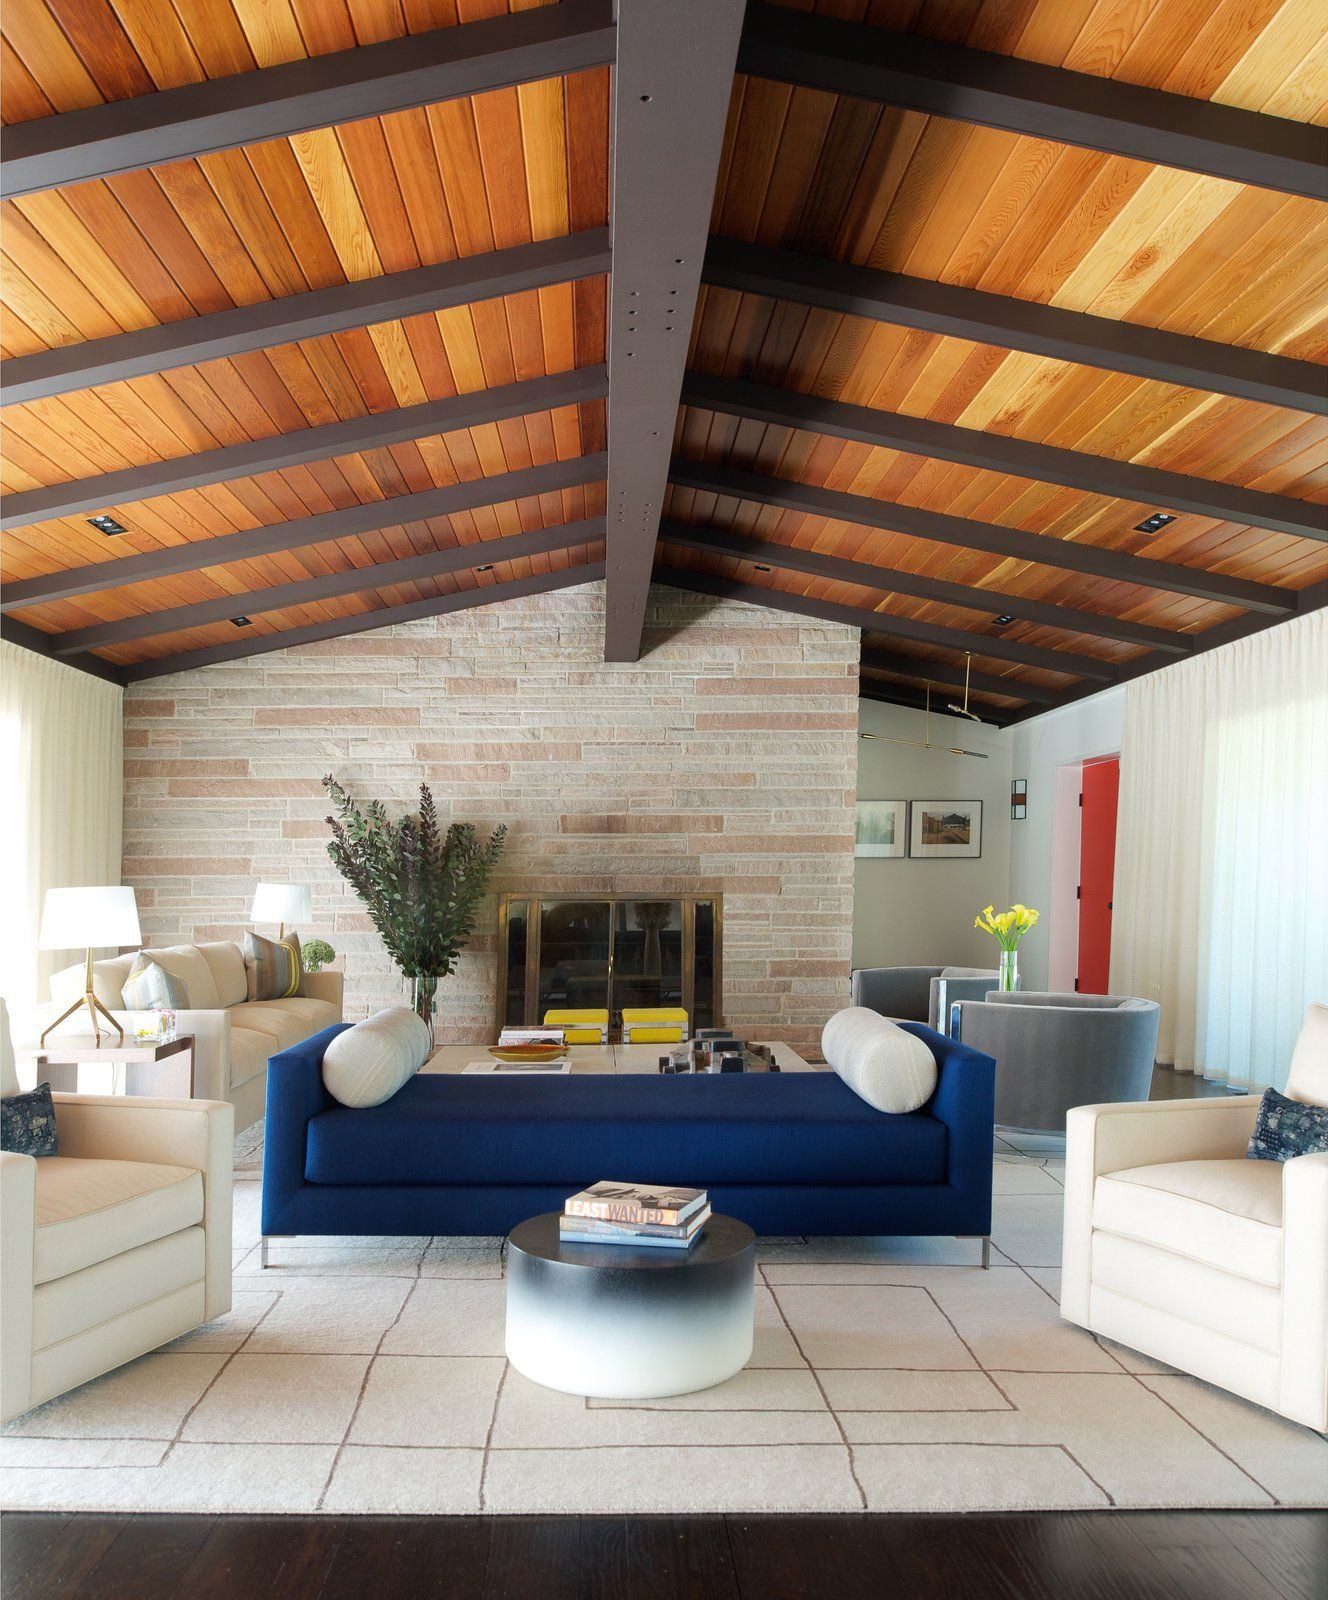 Midcentury Living Room Makeover With Cedar Wood Accent Ceiling Mid Century Modern Interiors House Design Mid Century Modern House